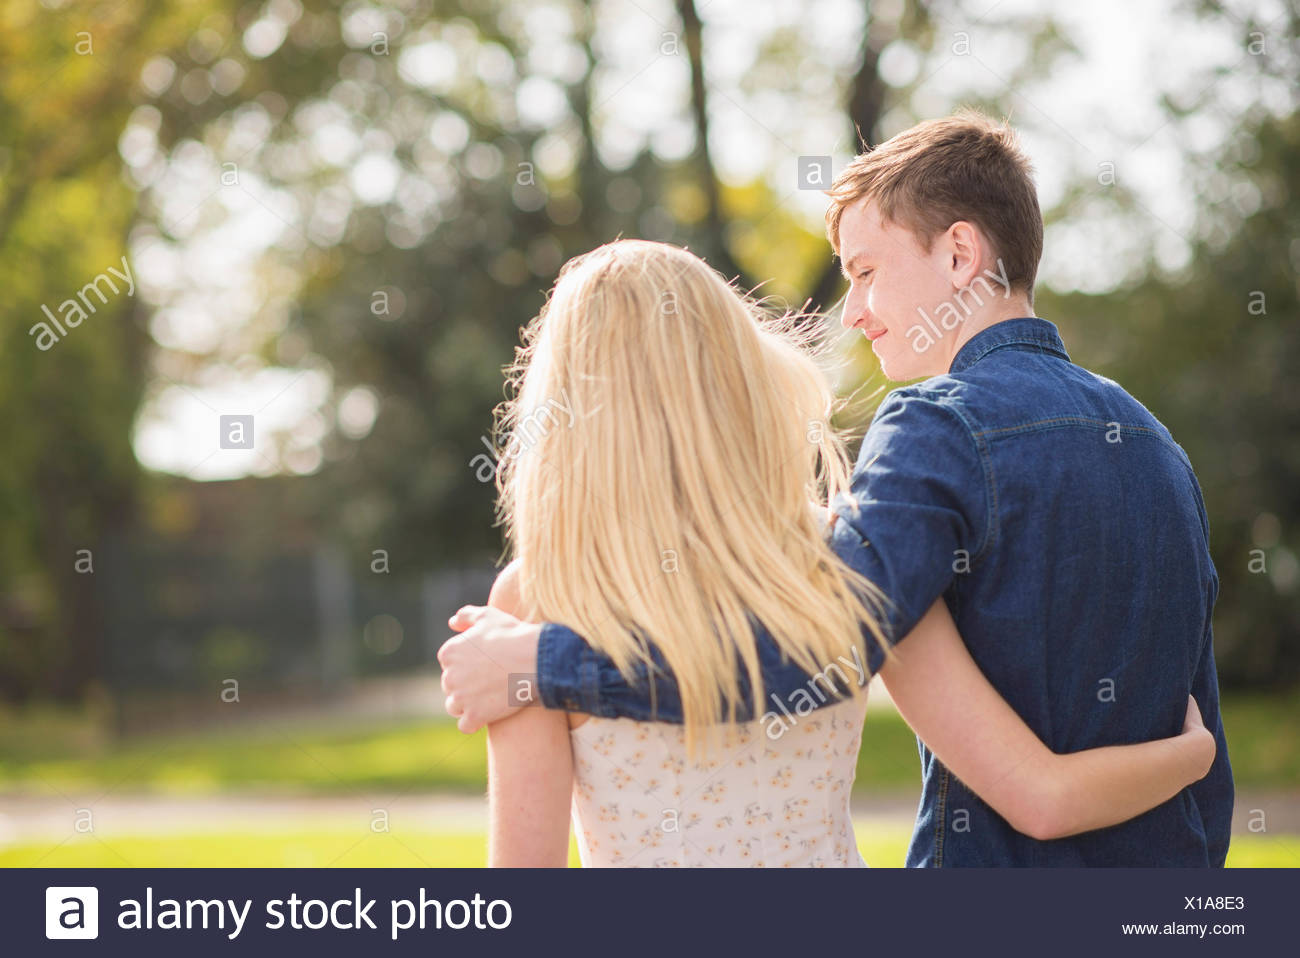 Rear view of romantic young couple strolling in park Stock Photo